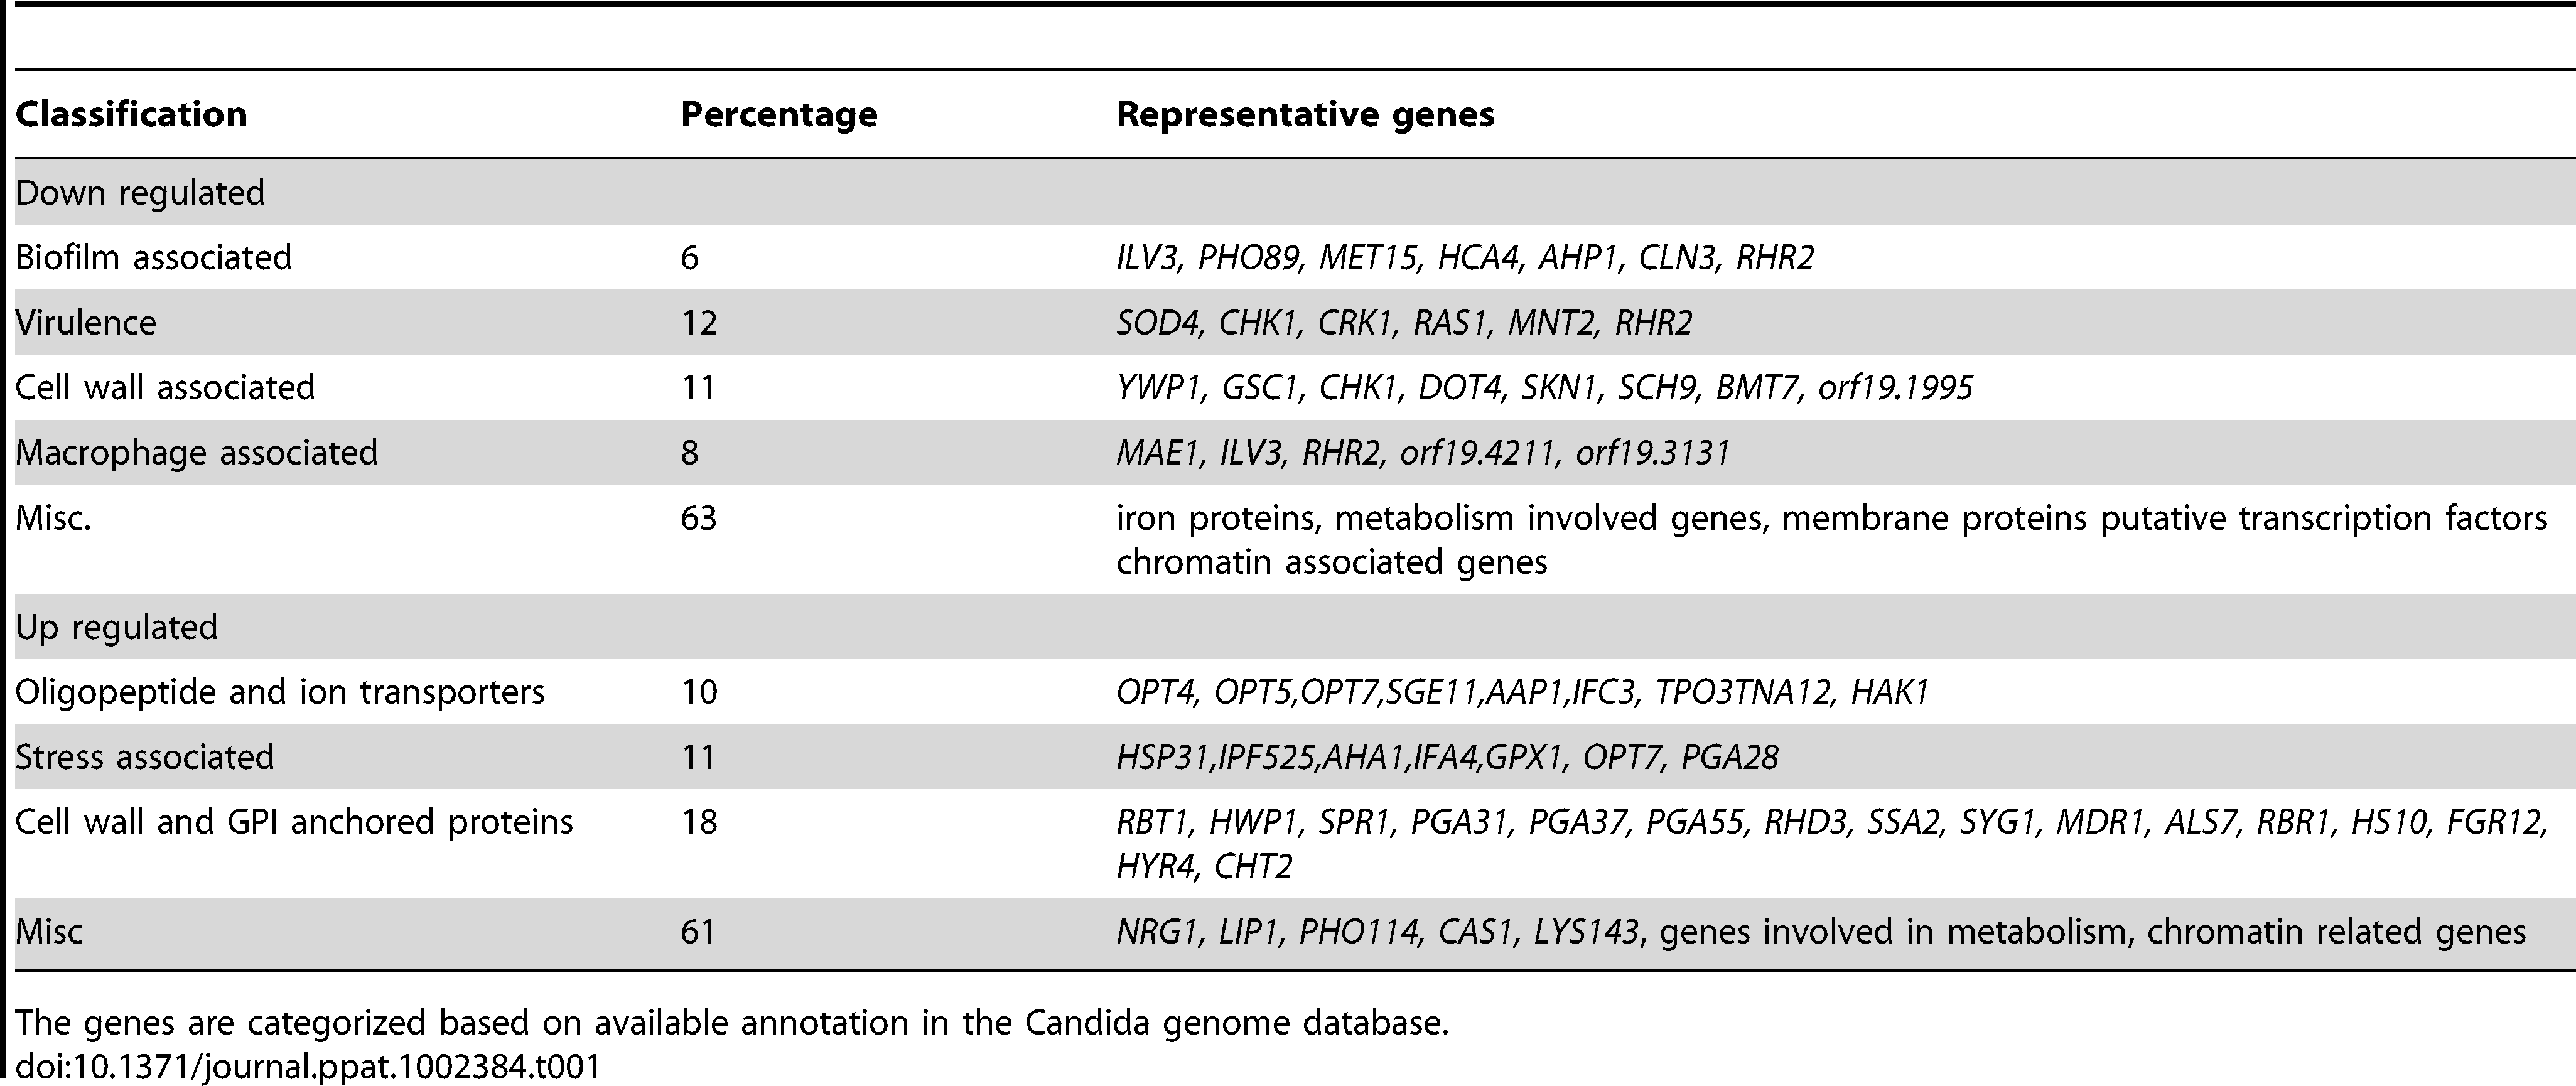 The list of representative genes differentially expressed in <i>C. albicans gal102Δ/Δ</i> as compared to the WT.